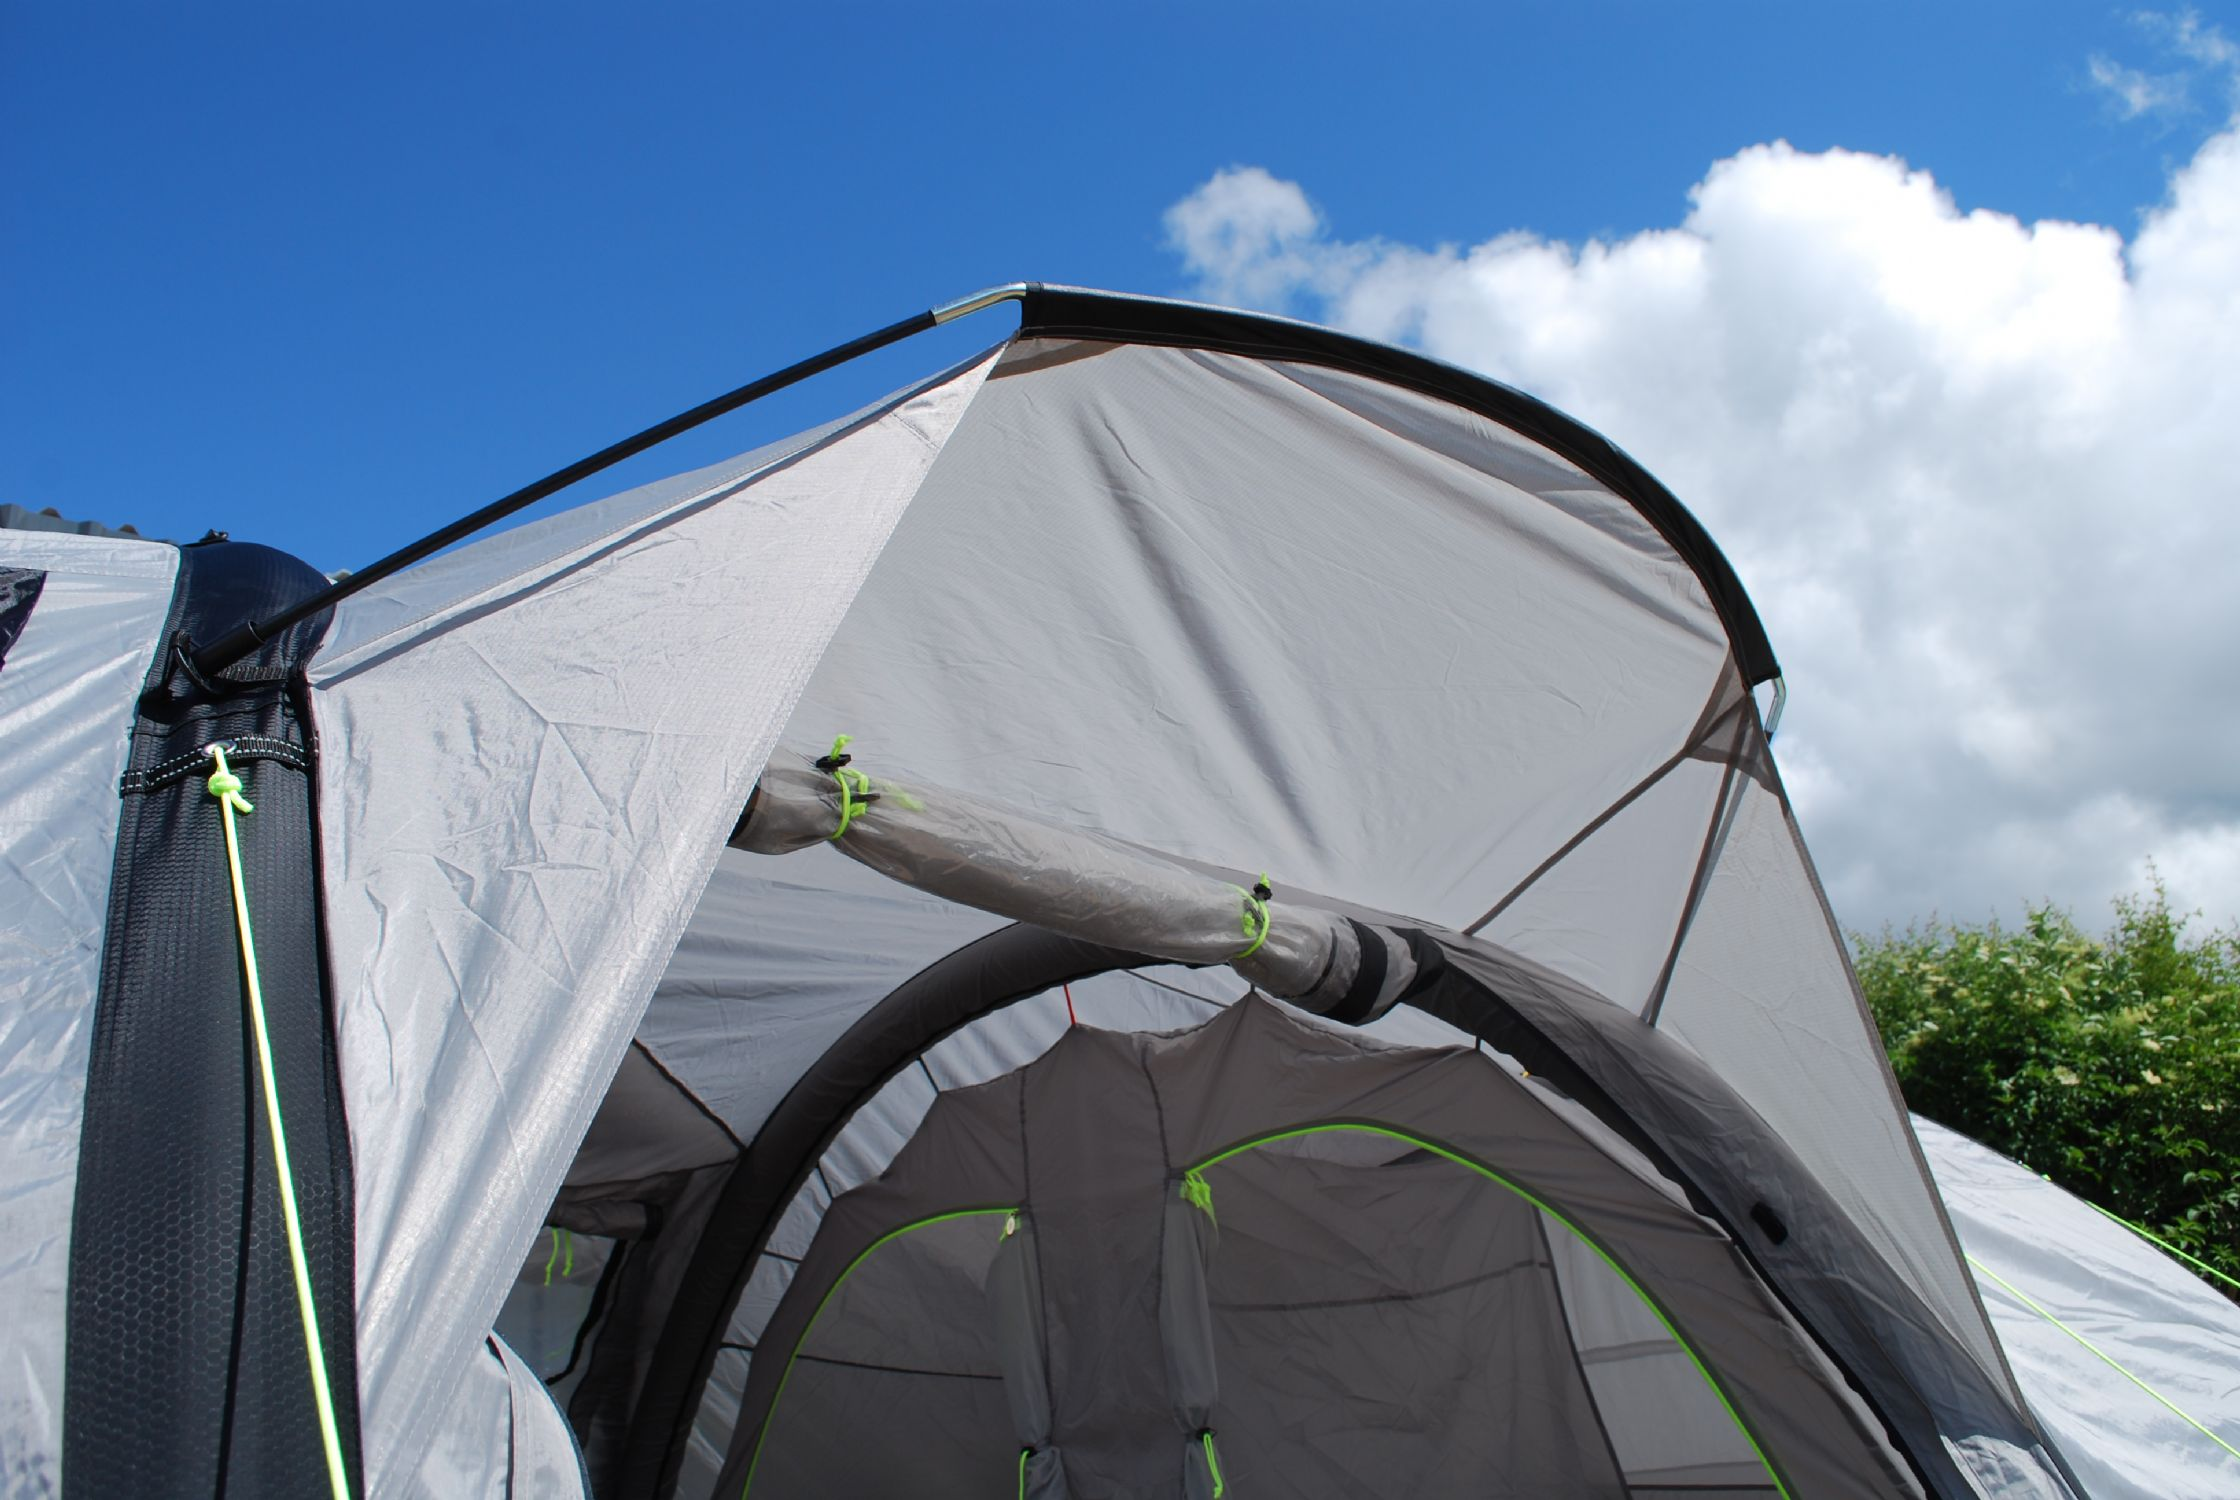 Inverters For Sale >> Khyam AeroTech 4XL Driveaway Awning - Airbeams - Camper Essentials